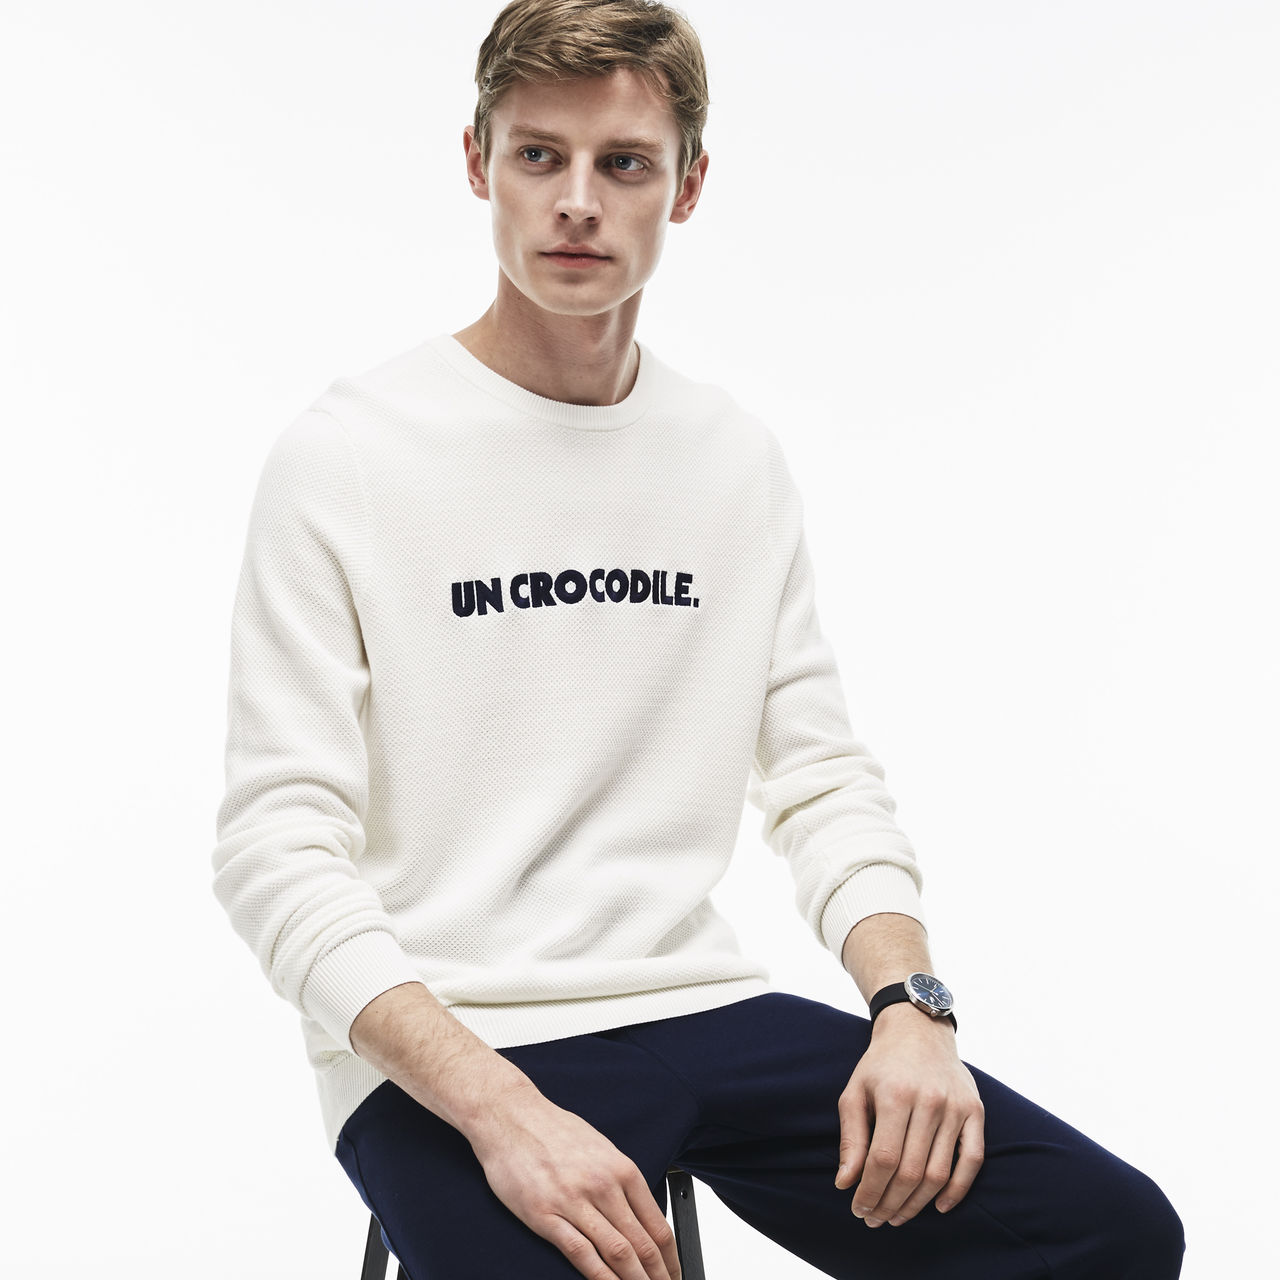 I recently bought this Lacoste sweater; I got a size 9 which Lacoste says is a 4XL.